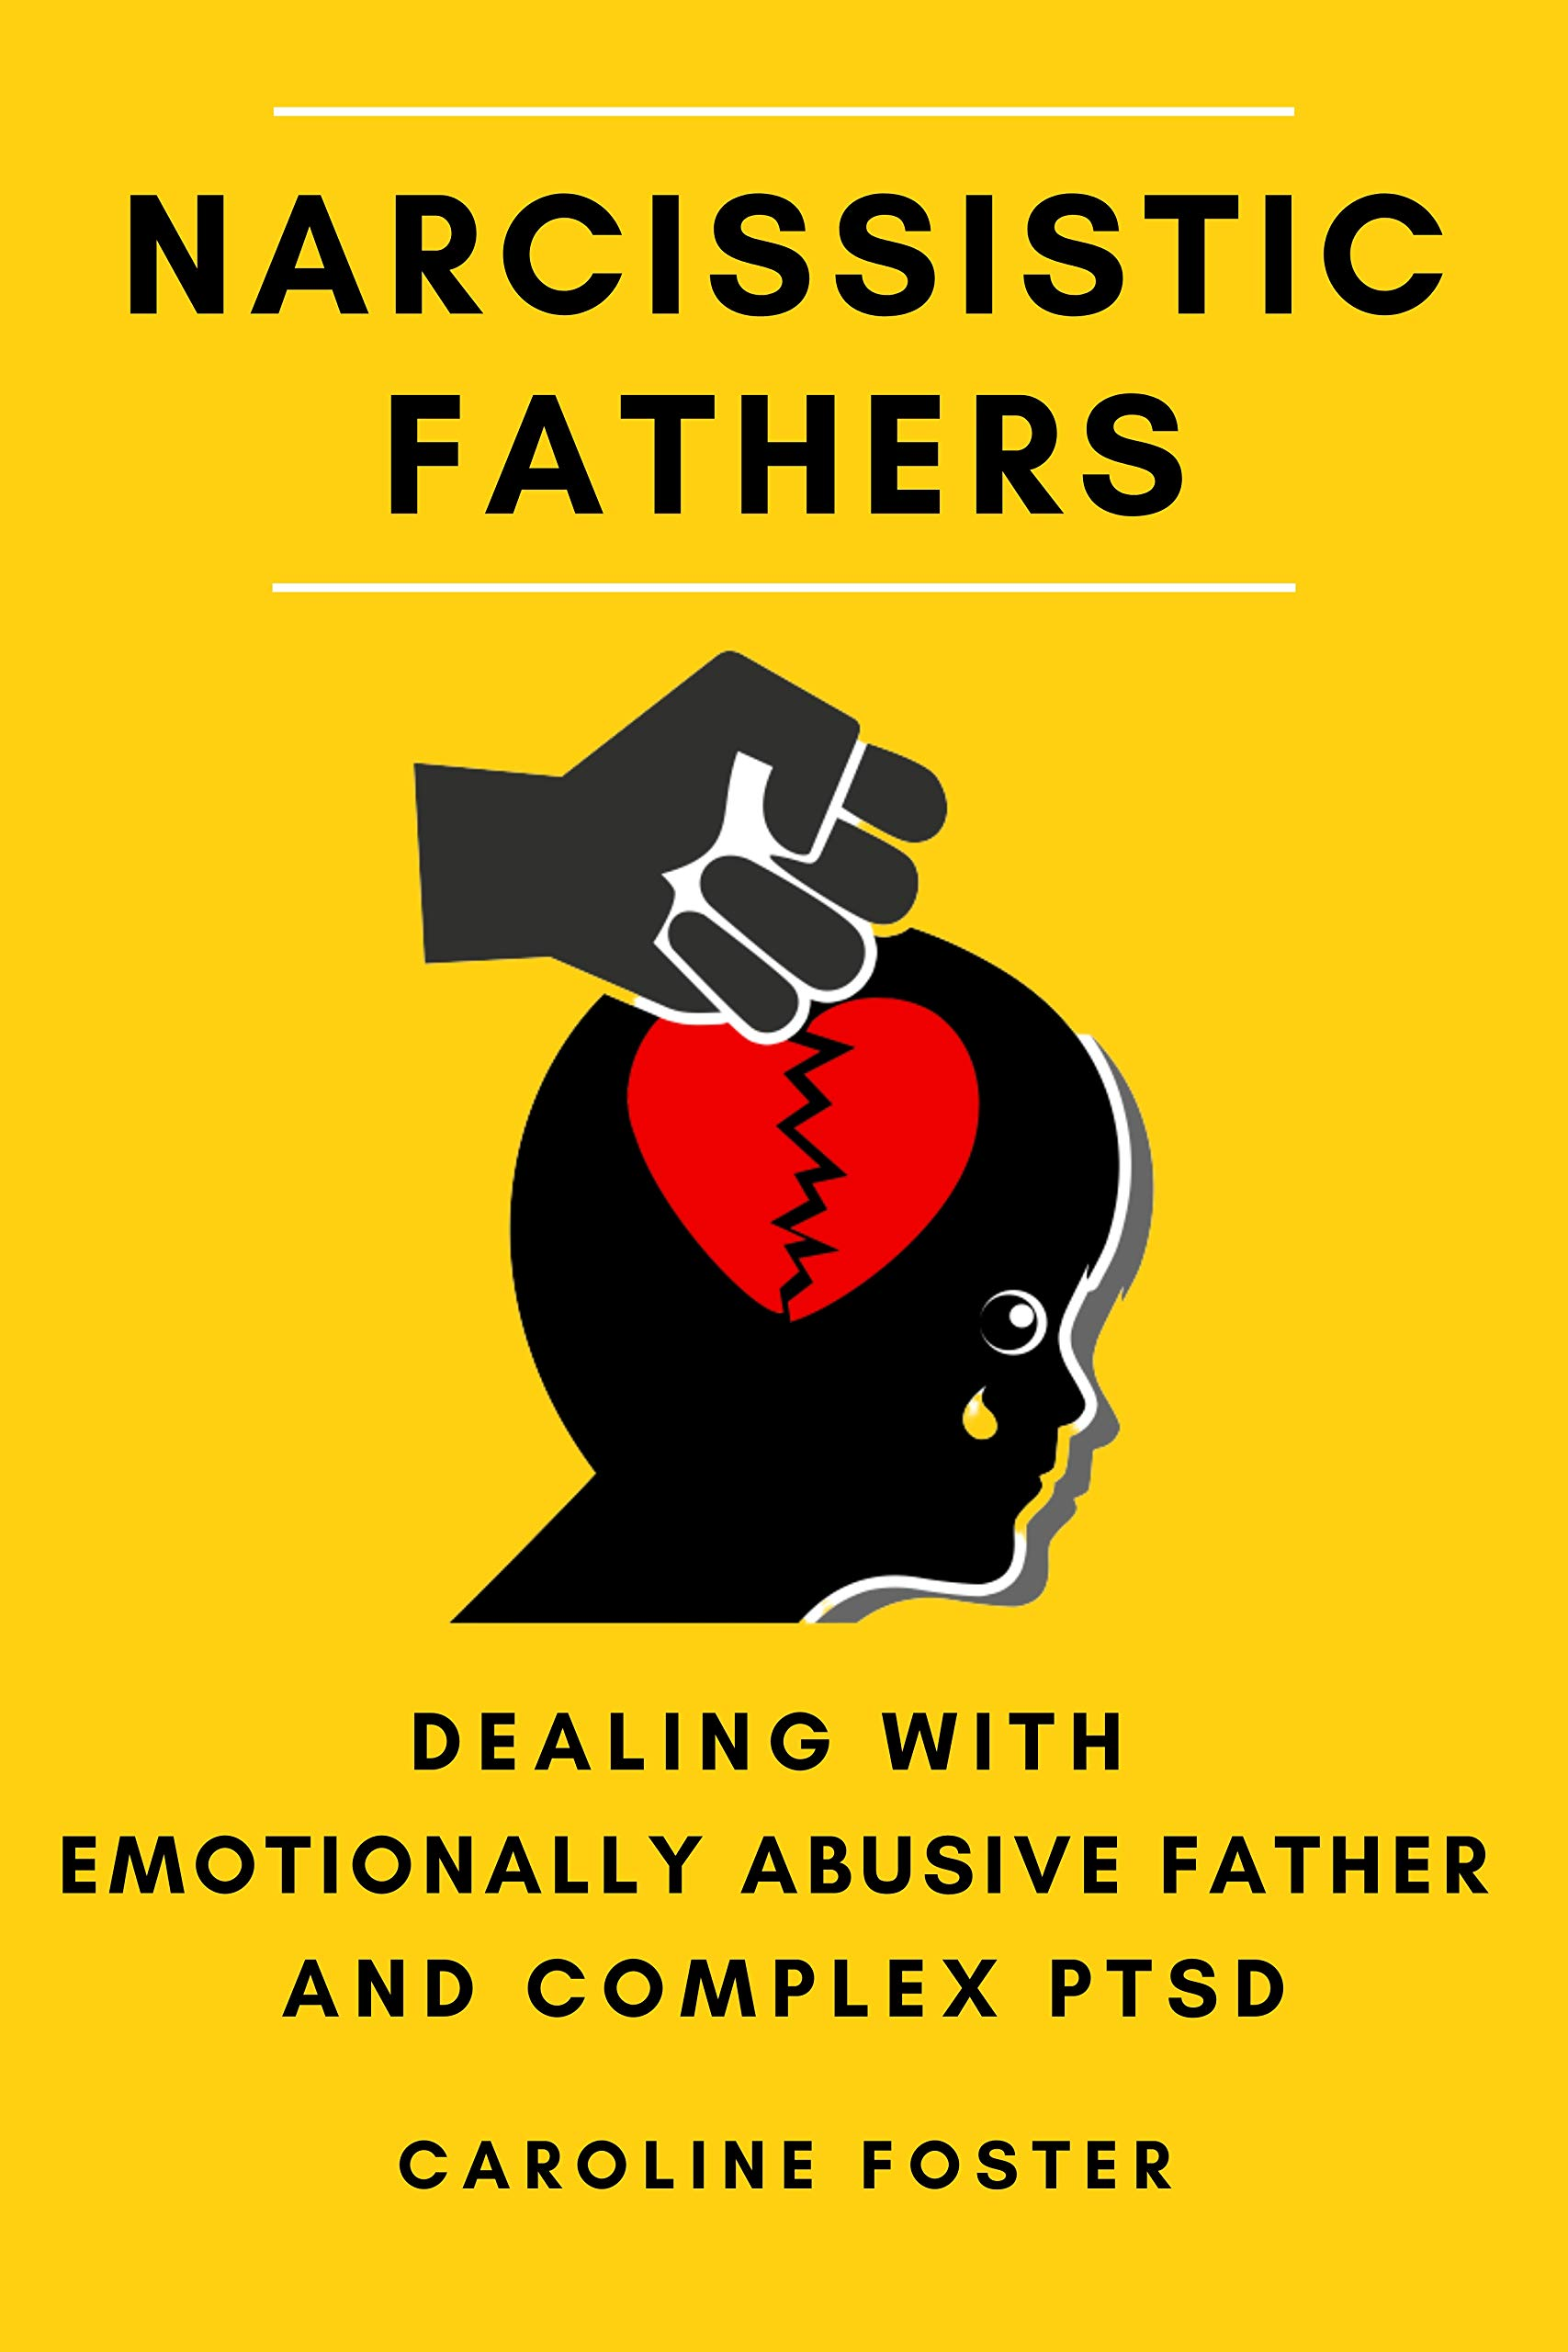 Narcissistic Fathers: Dealing with Emotionally Abusive Father and Complex PTSD (Adult Children of Narcissists Recovery Book 2) (English Edition)